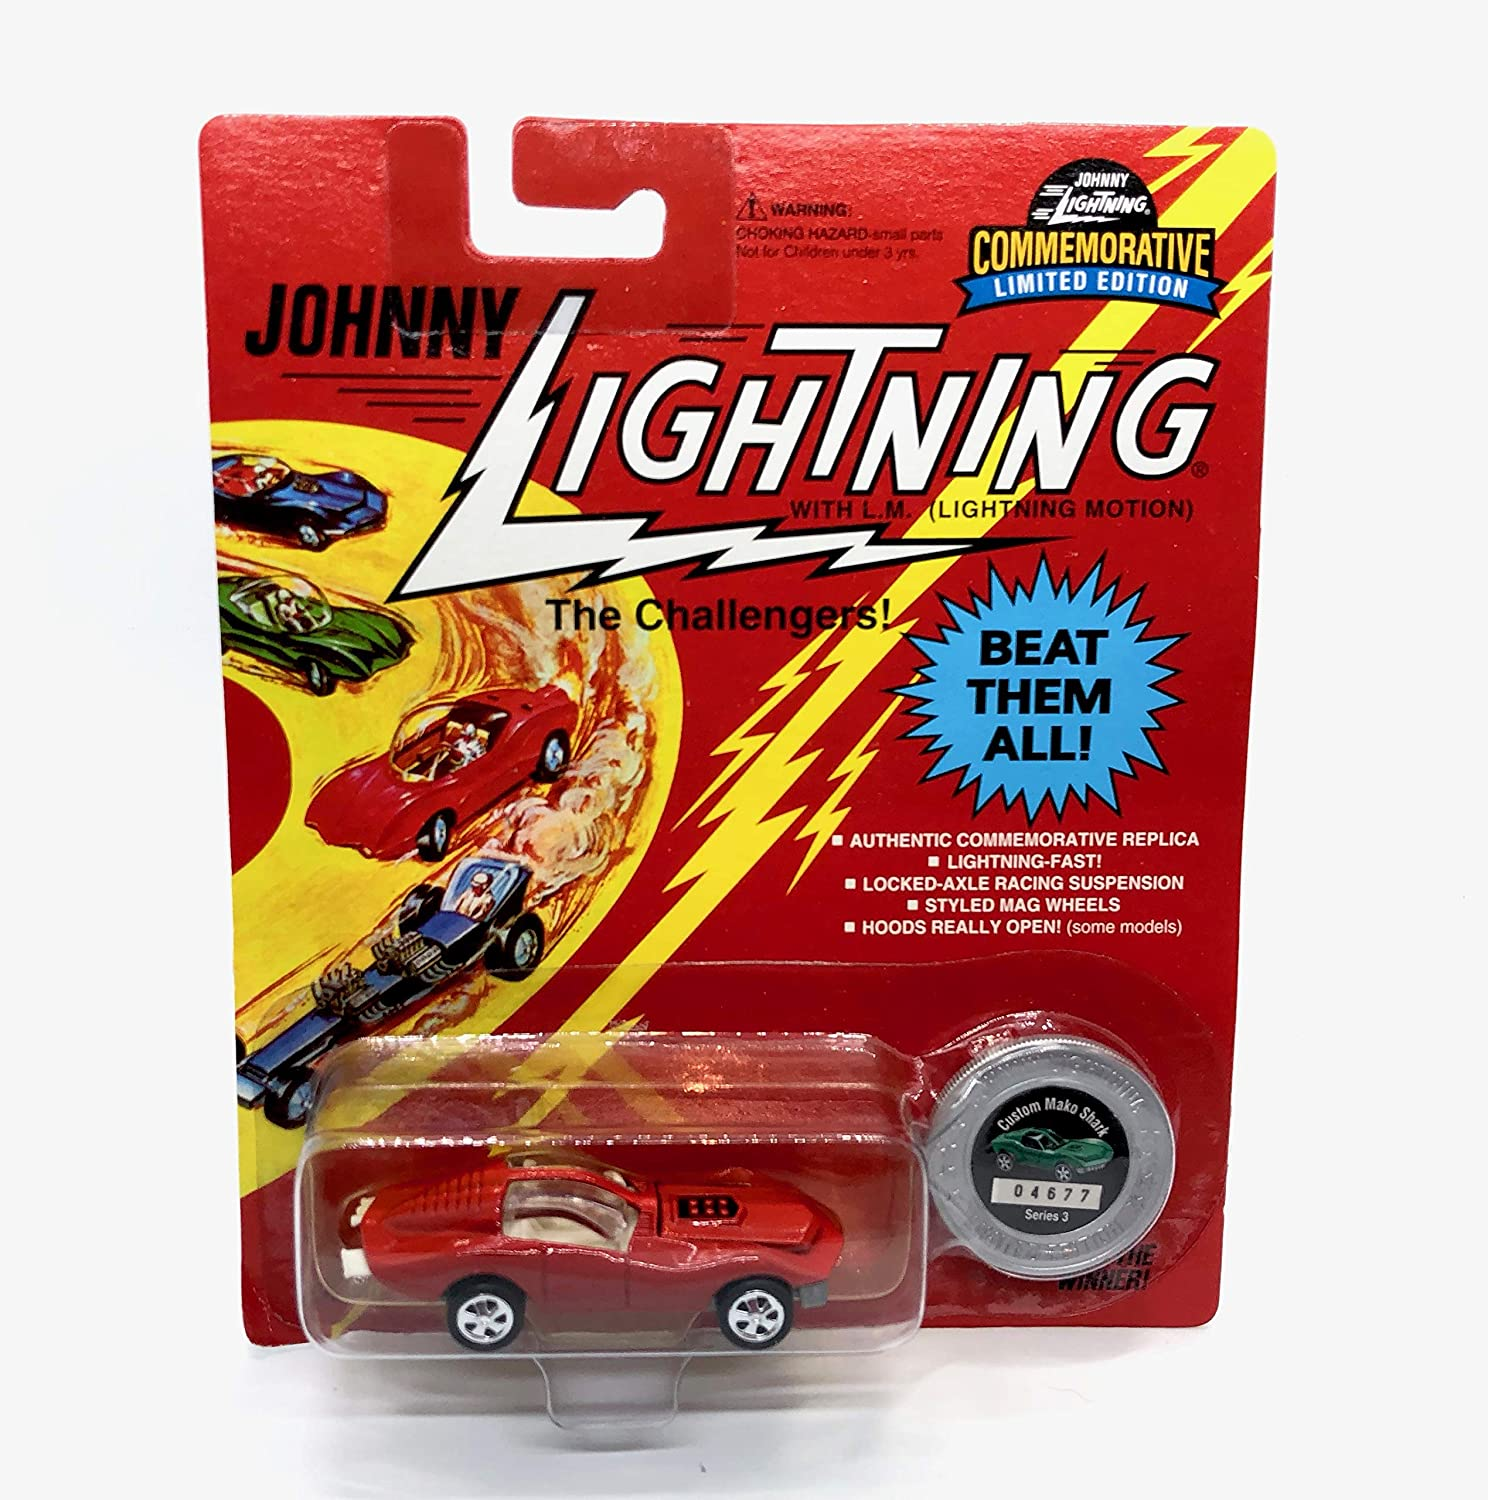 Johnny Lightning Custom Mako Shark (Red) Commemoratives Series 3 Limited Edition 1995 Playing Mantis 1:64 Scale Die Cast Vehicle